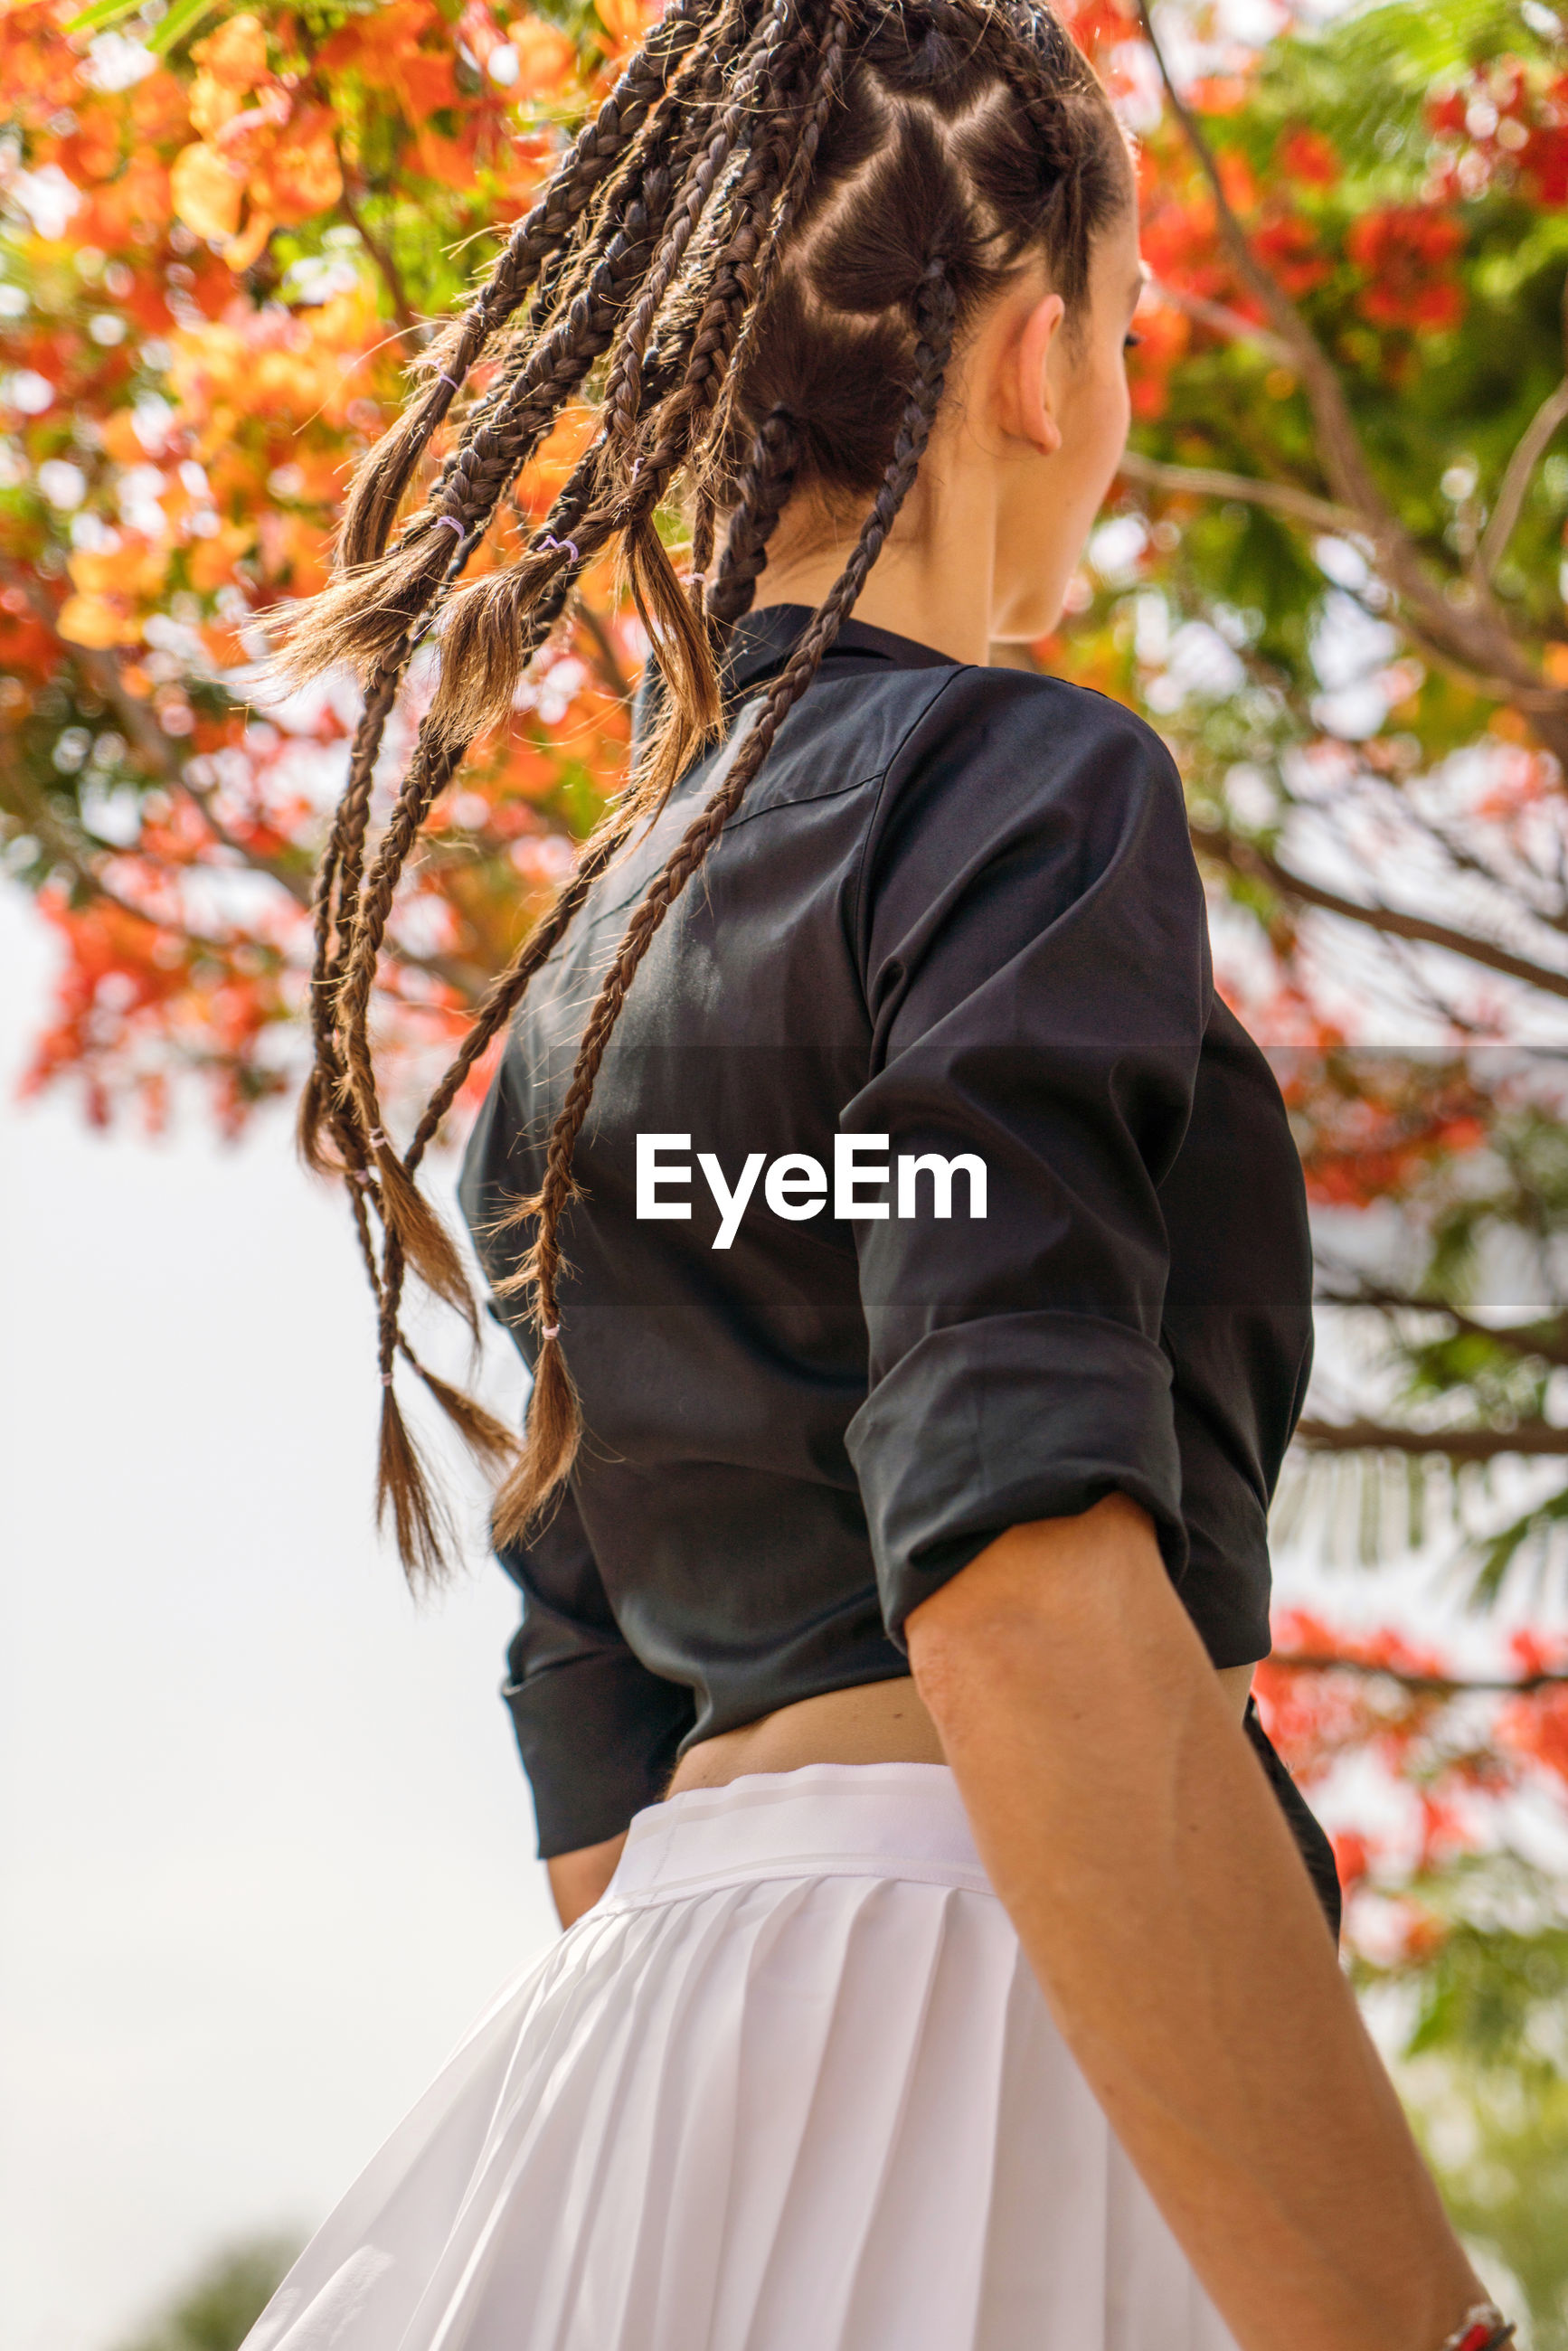 Midsection of woman standing by tree having her hair braided and wearing a stylish outfit